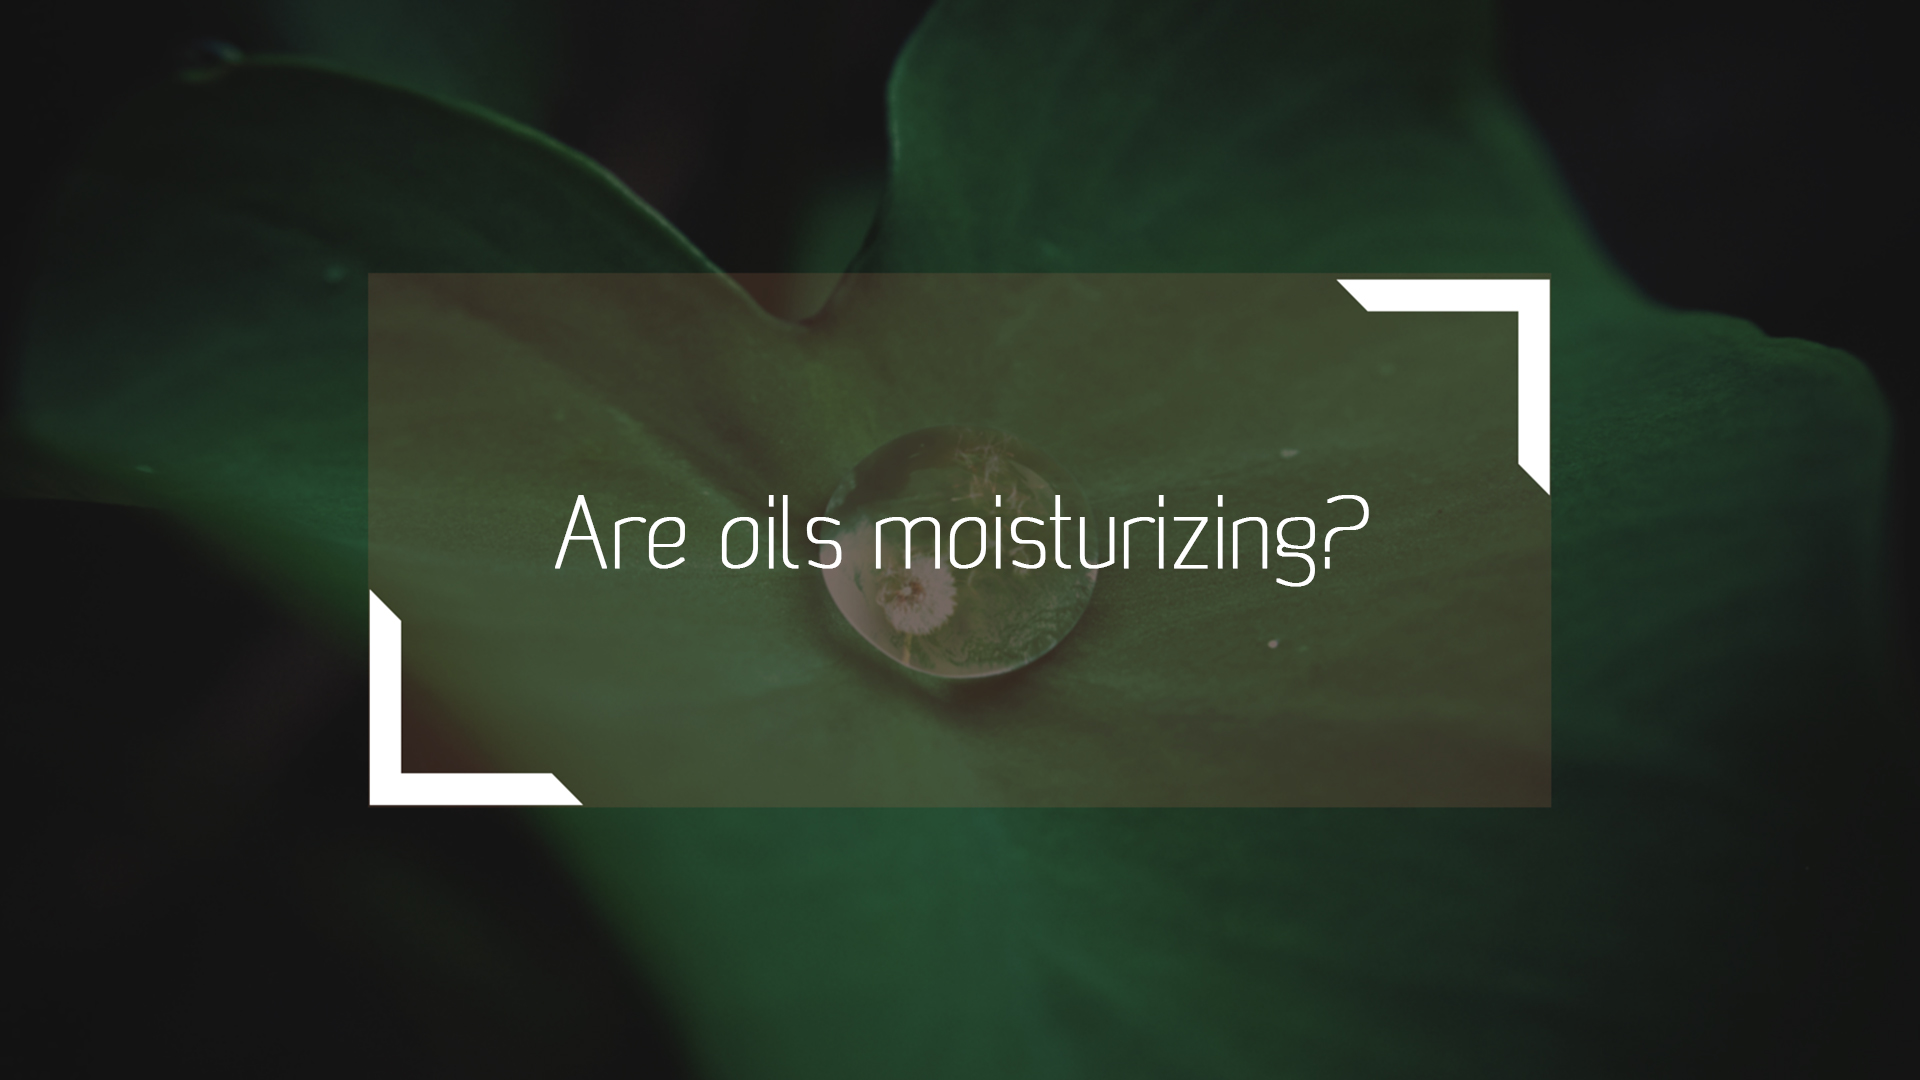 Are oils moisturizing?